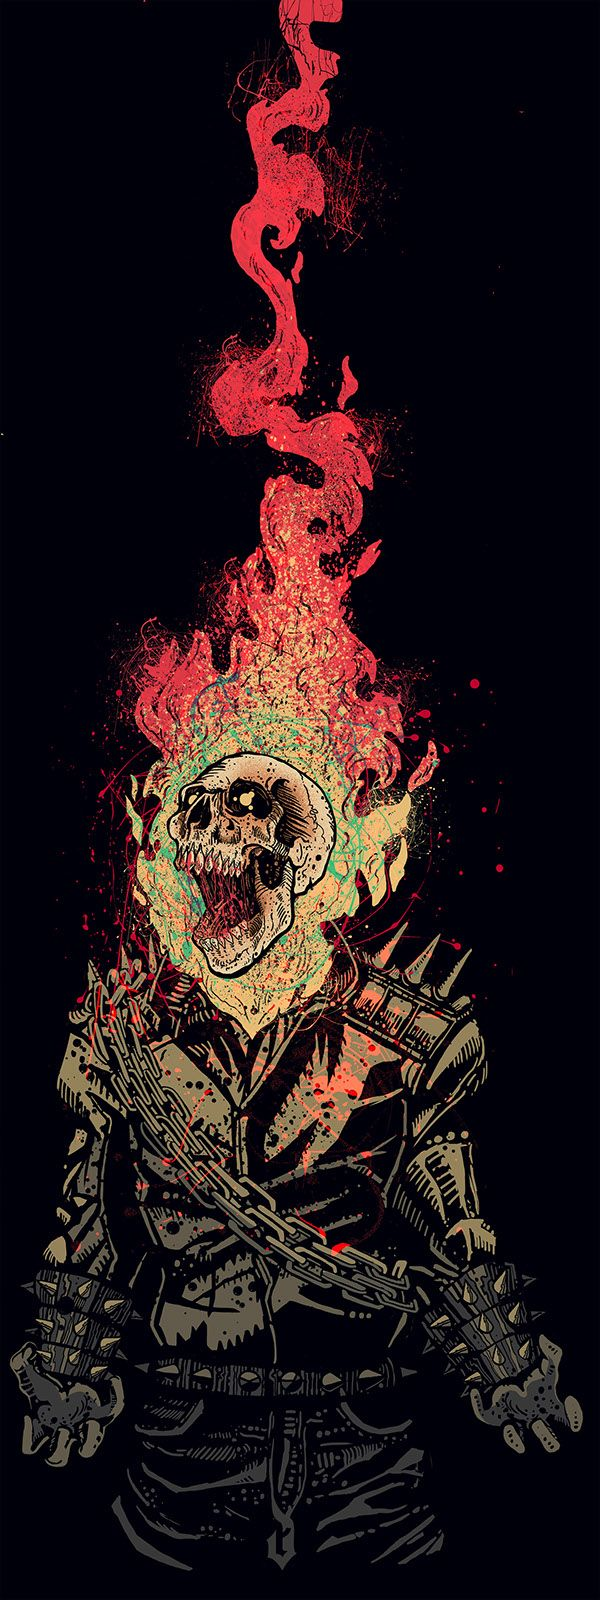 Top Wallpaper Mobile Ghost Rider - d562a3eb629b9eb157d7a5fccdffc760--ghost-rider-marvel-ghost-rider-art  You Should Have_726530.jpg